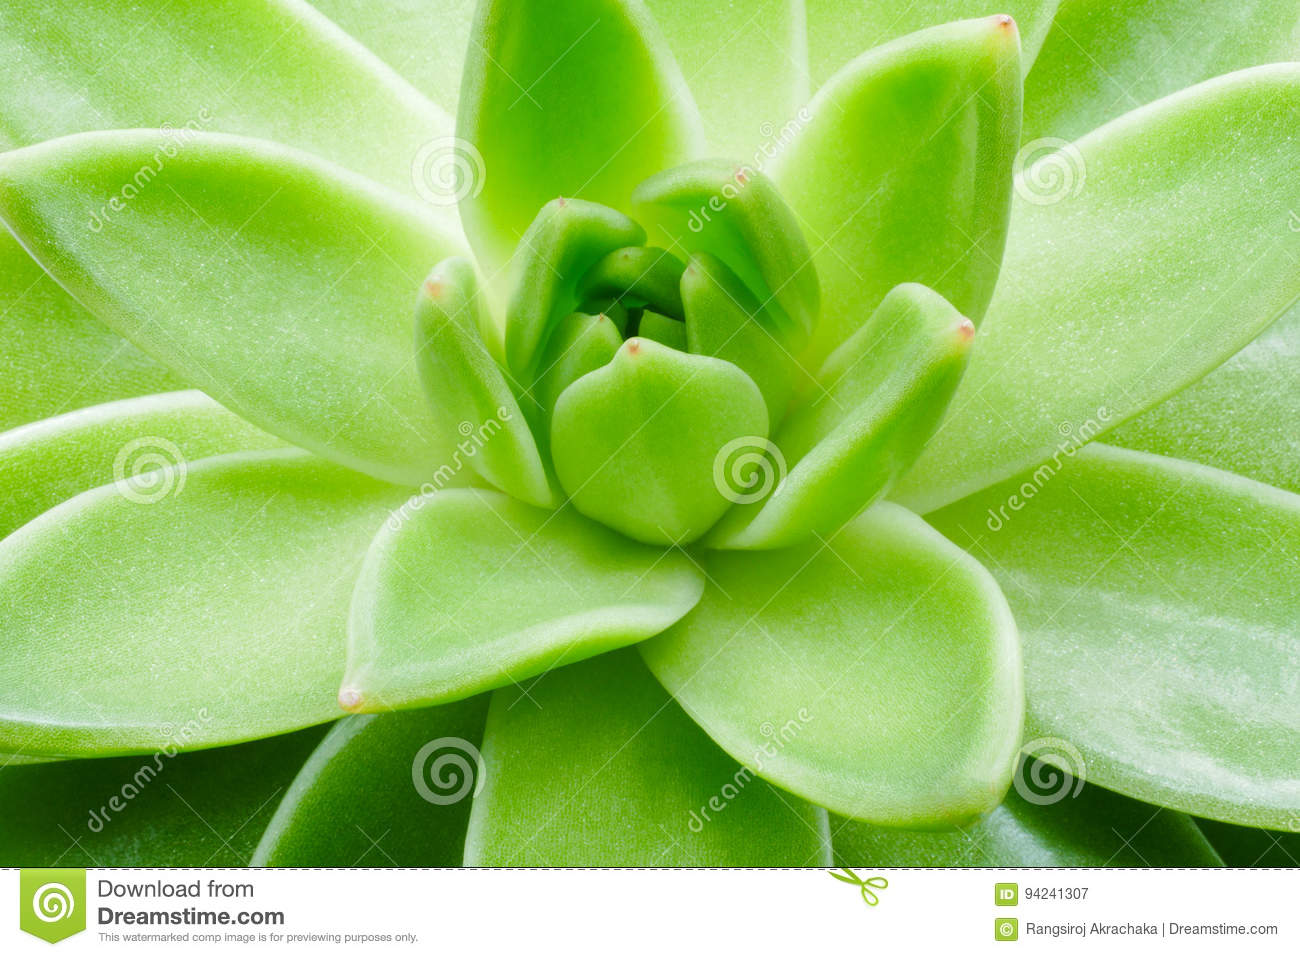 Green succulent plant macro close up background.